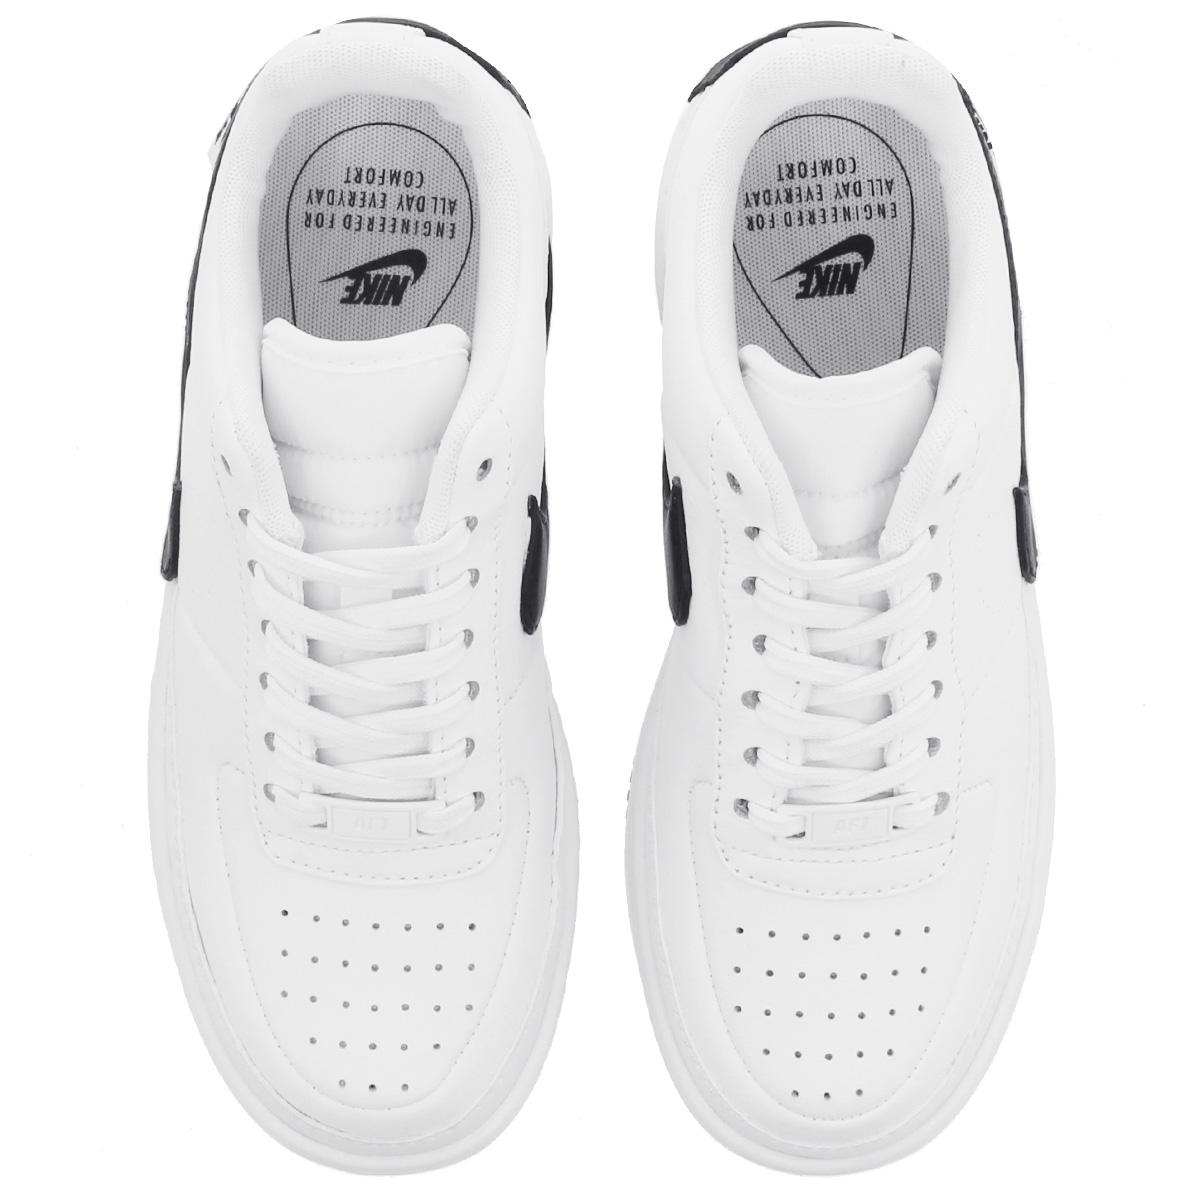 9e14af2a5023ec NIKE WMNS AIR FORCE 1 JESTER XX Nike women air force 1 Jester XX  WHITE BLACK ao1220-102